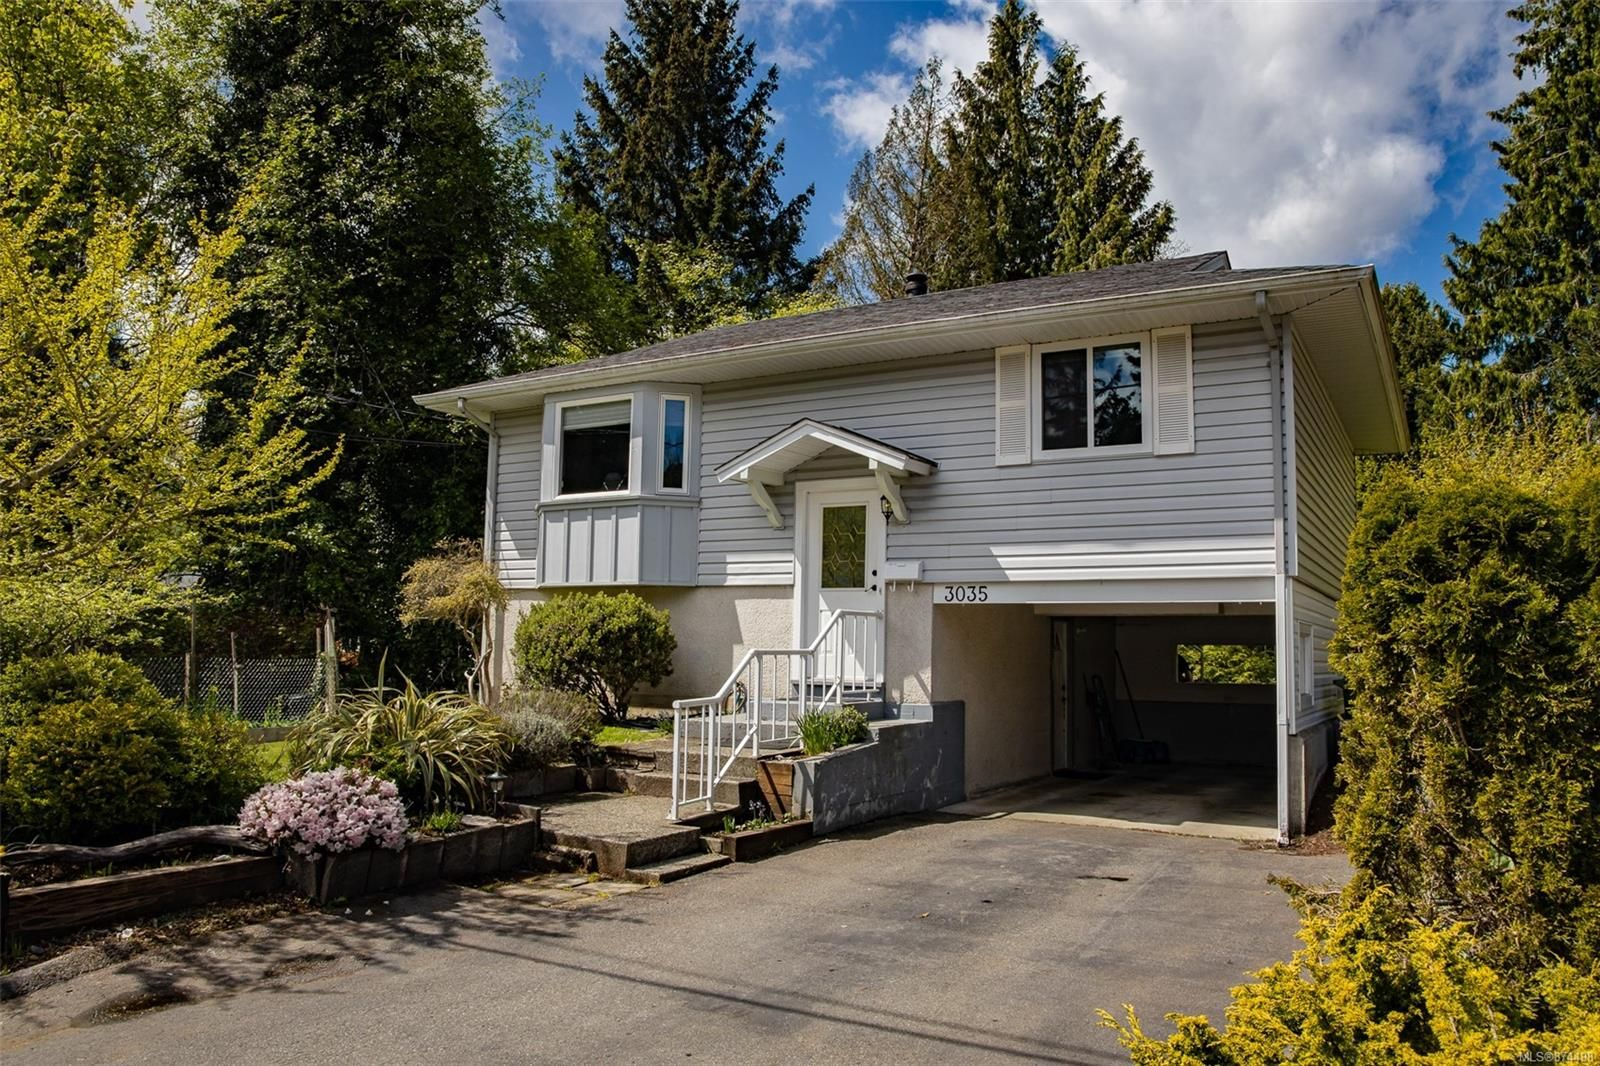 Main Photo: 3035 Charles St in : Na Departure Bay House for sale (Nanaimo)  : MLS®# 874498